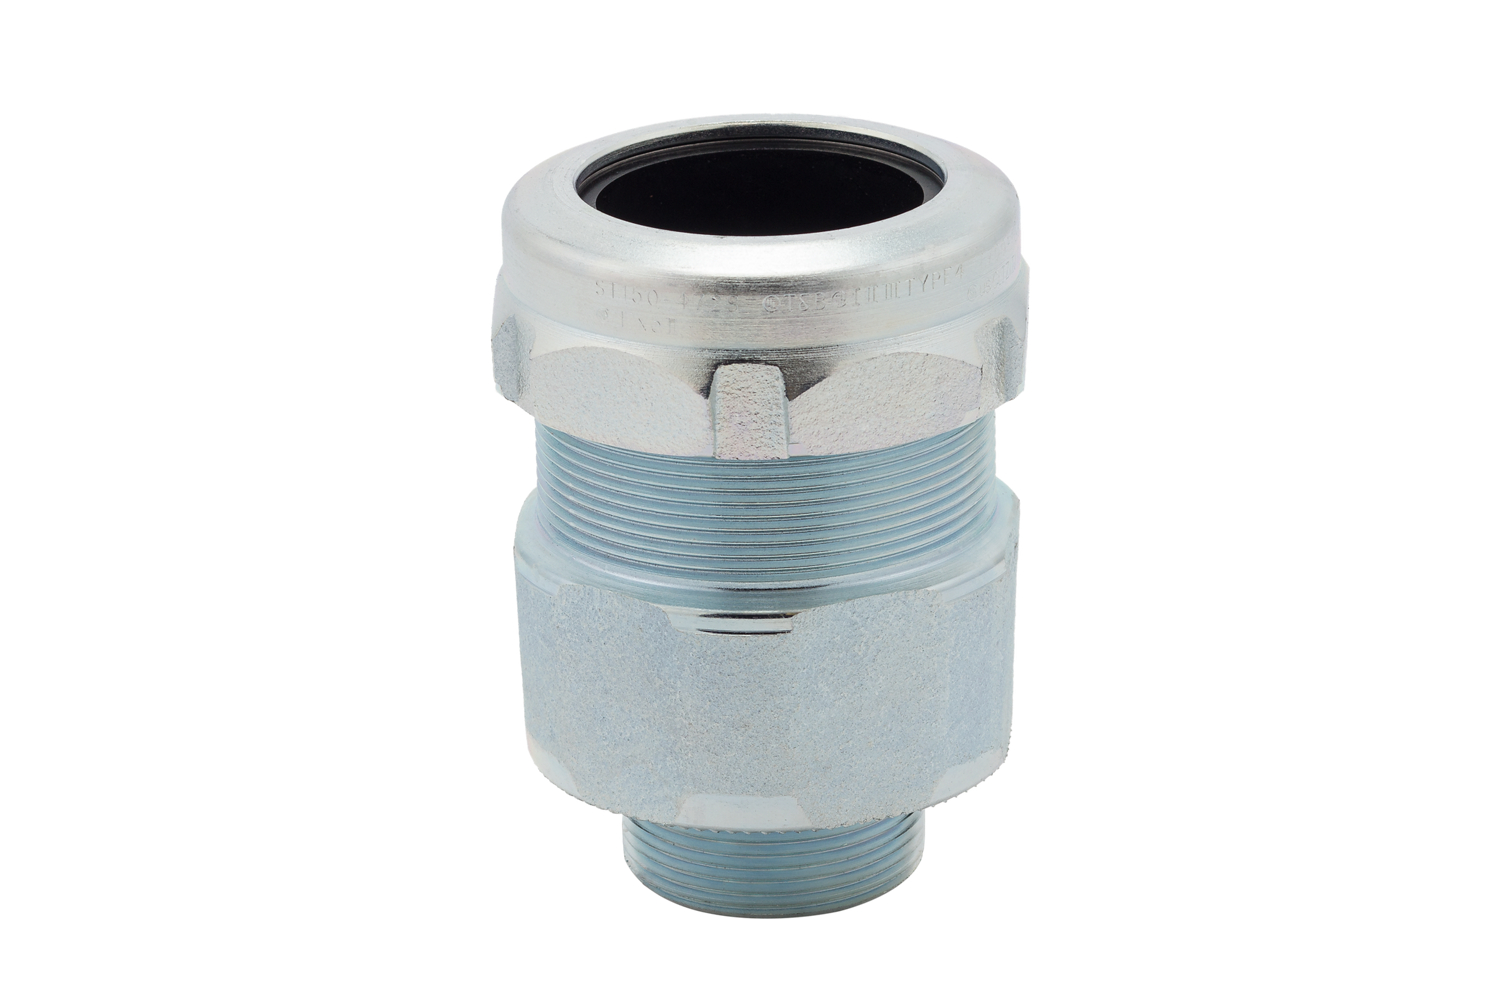 T&B Fittings ST150-472S